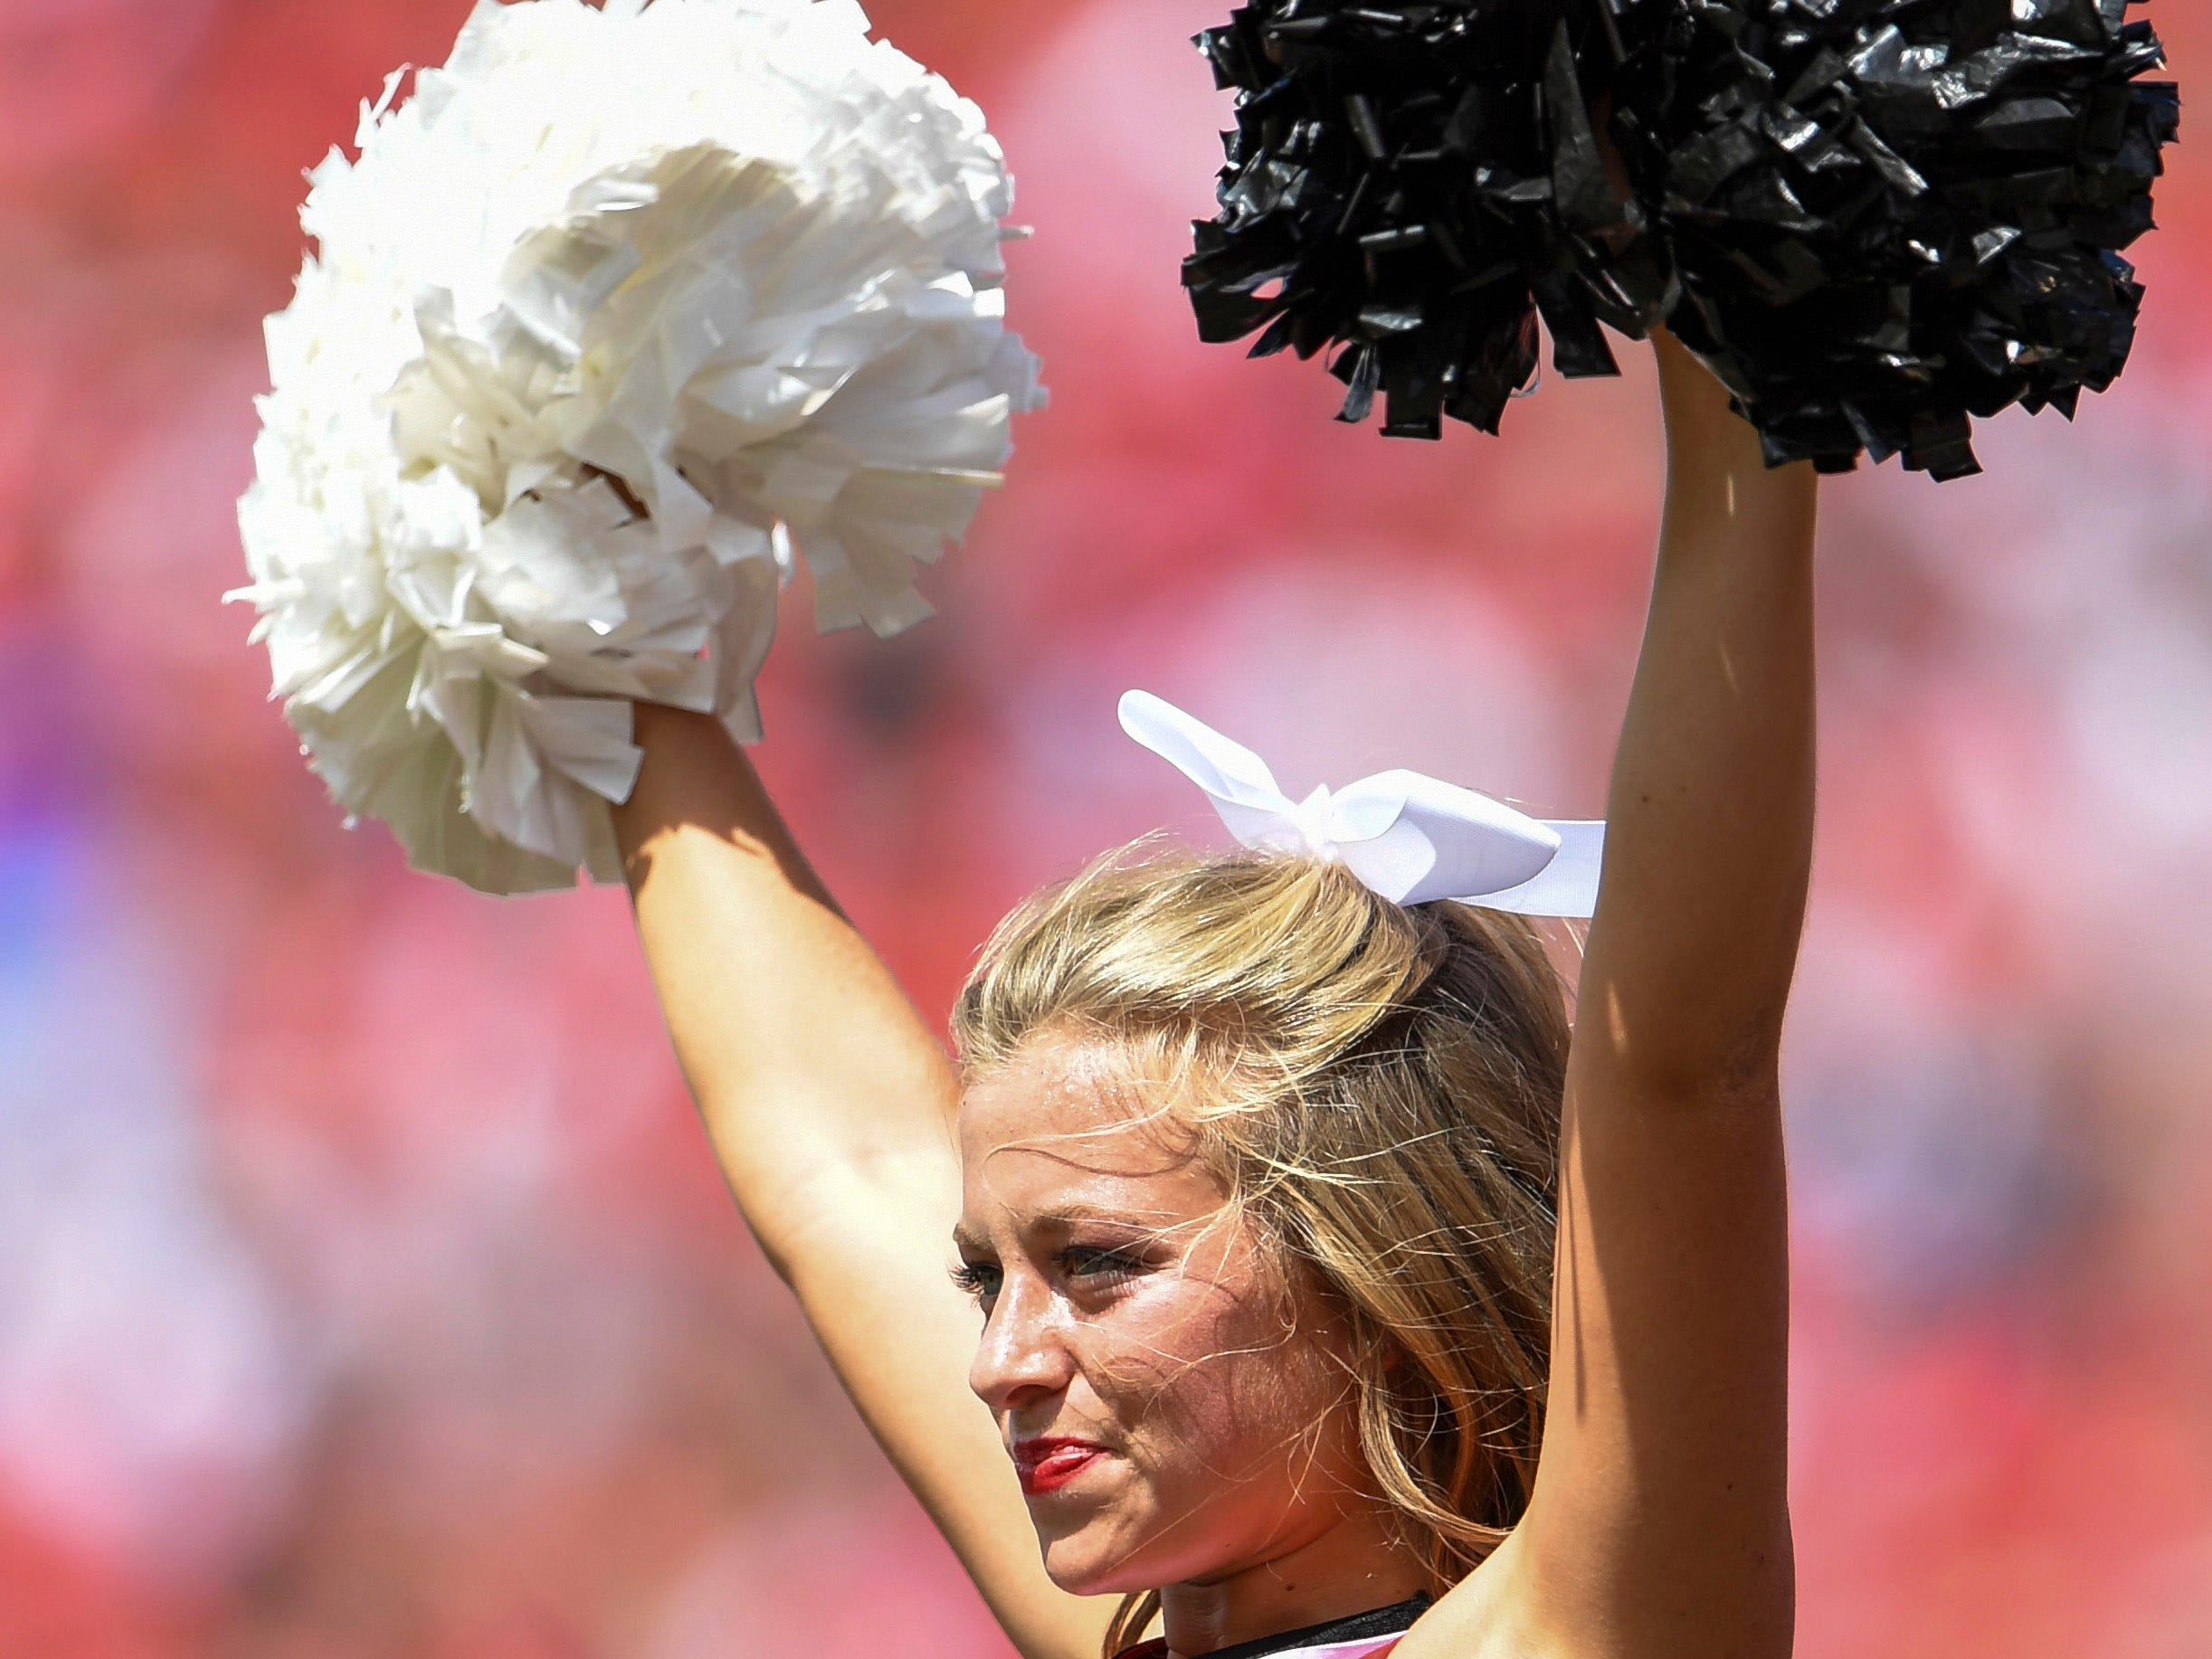 Week 3: A Georgia Bulldogs cheerleader reacts after a touchdown against the Middle Tennessee Blue Raiders.